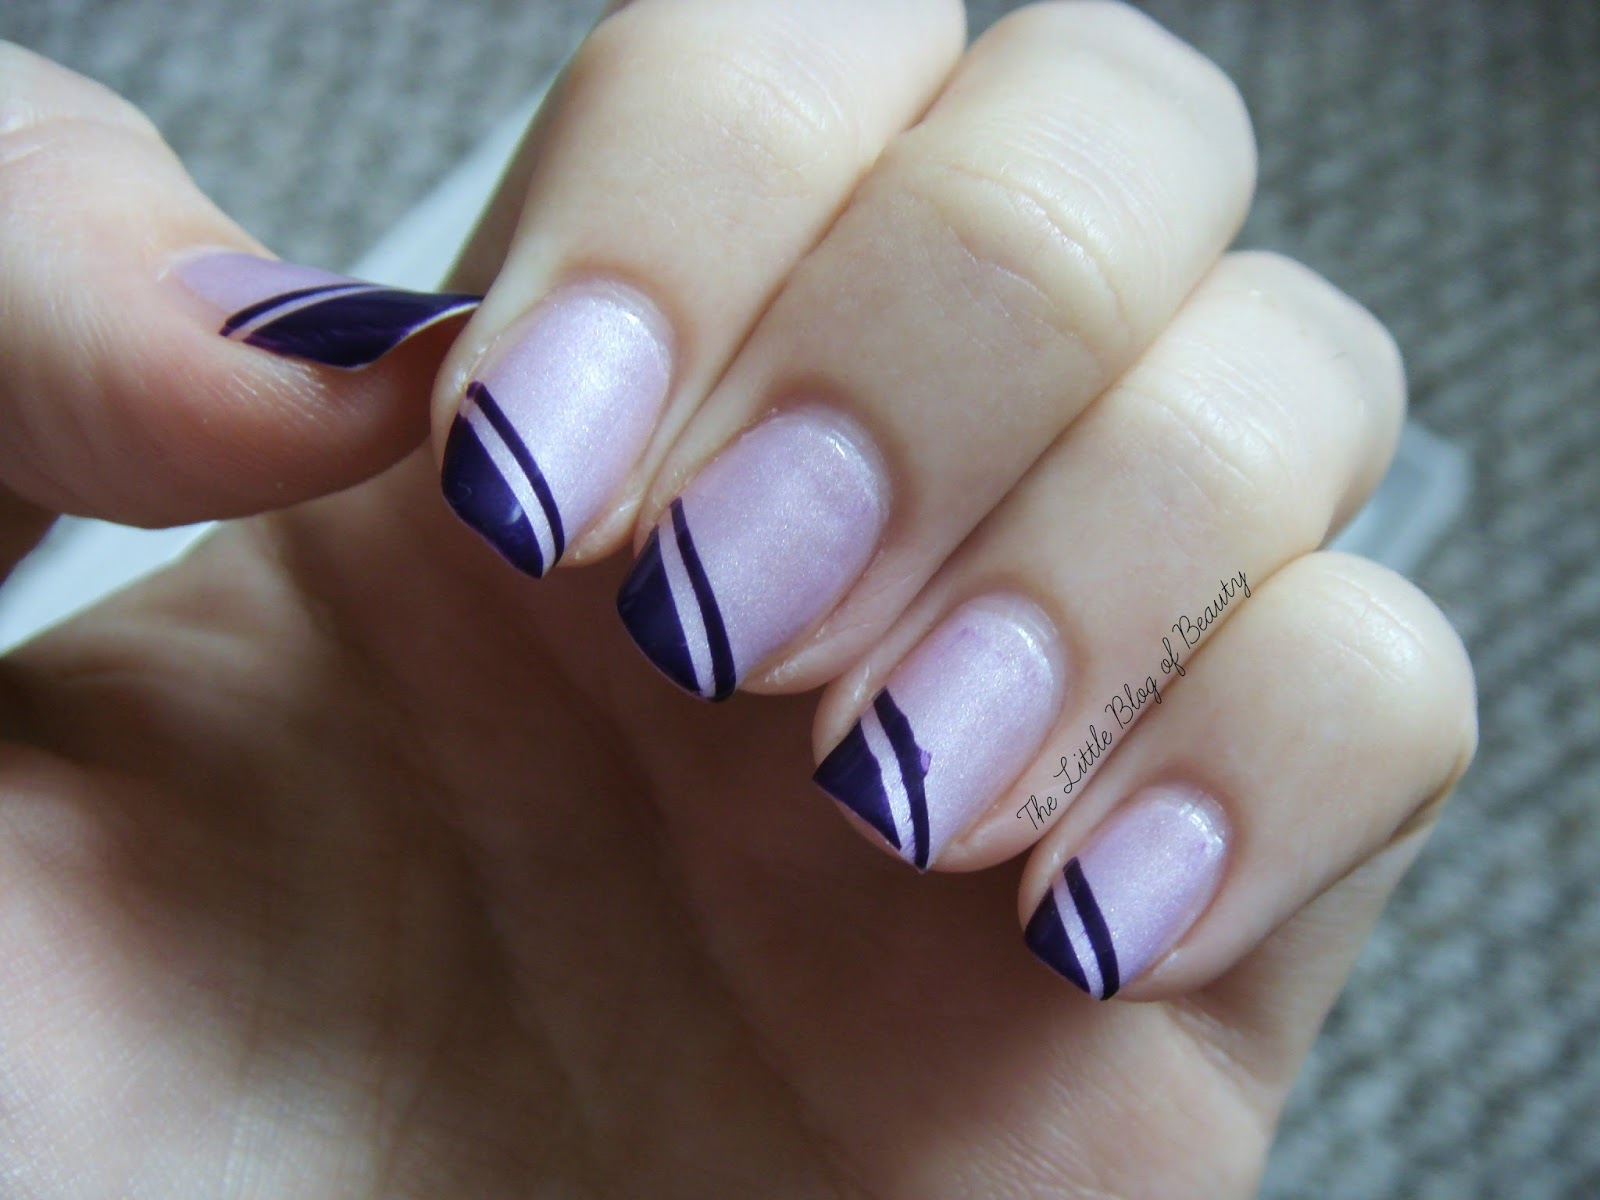 Nail art - Geometric corners